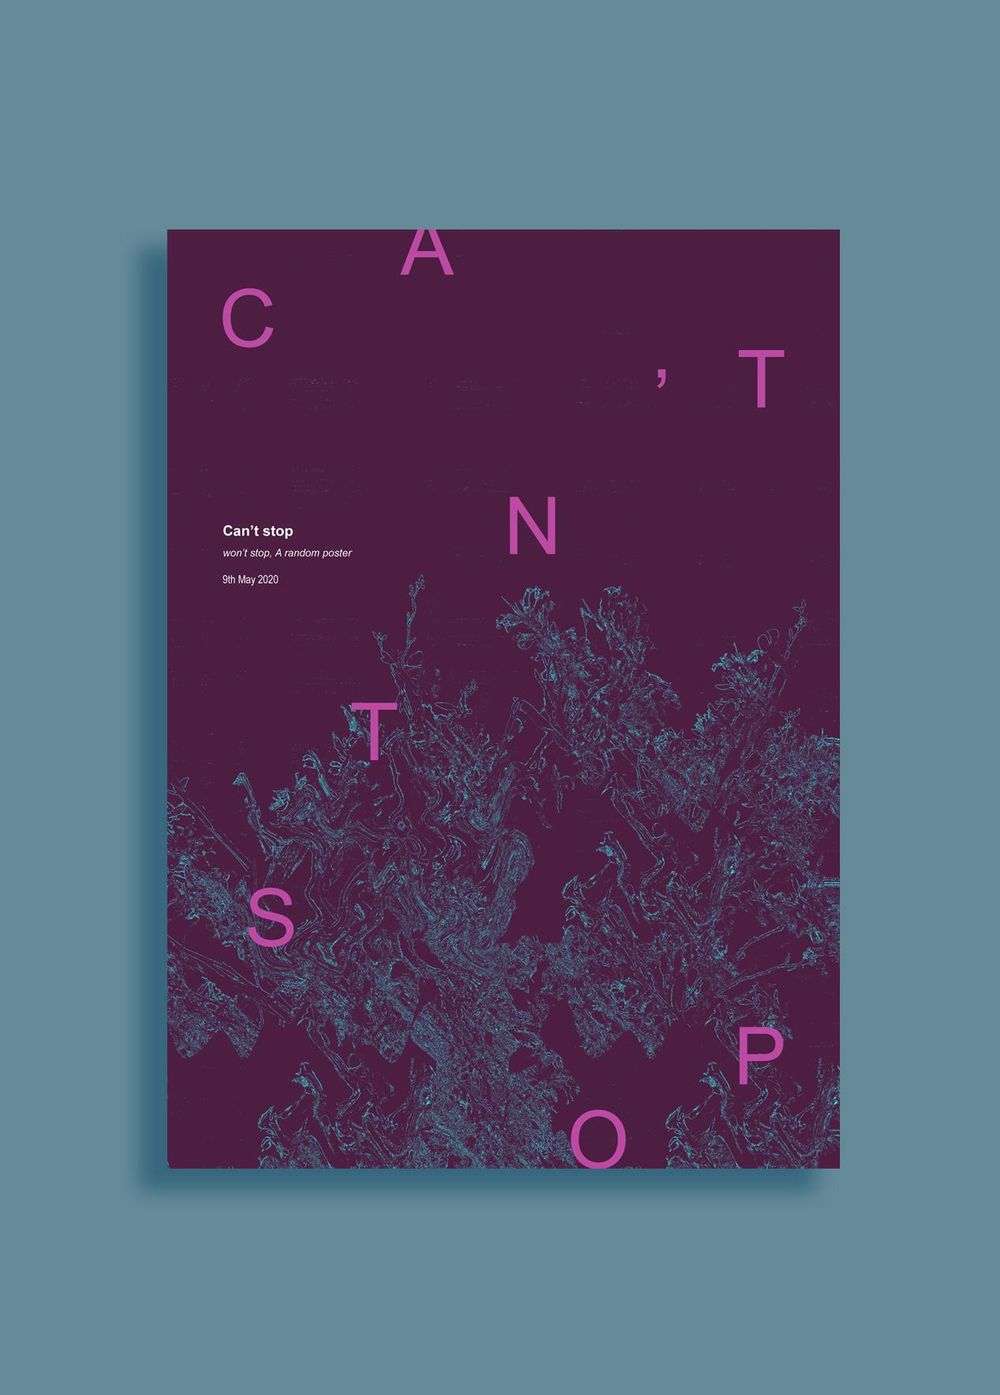 Can't Stop - image 1 - student project